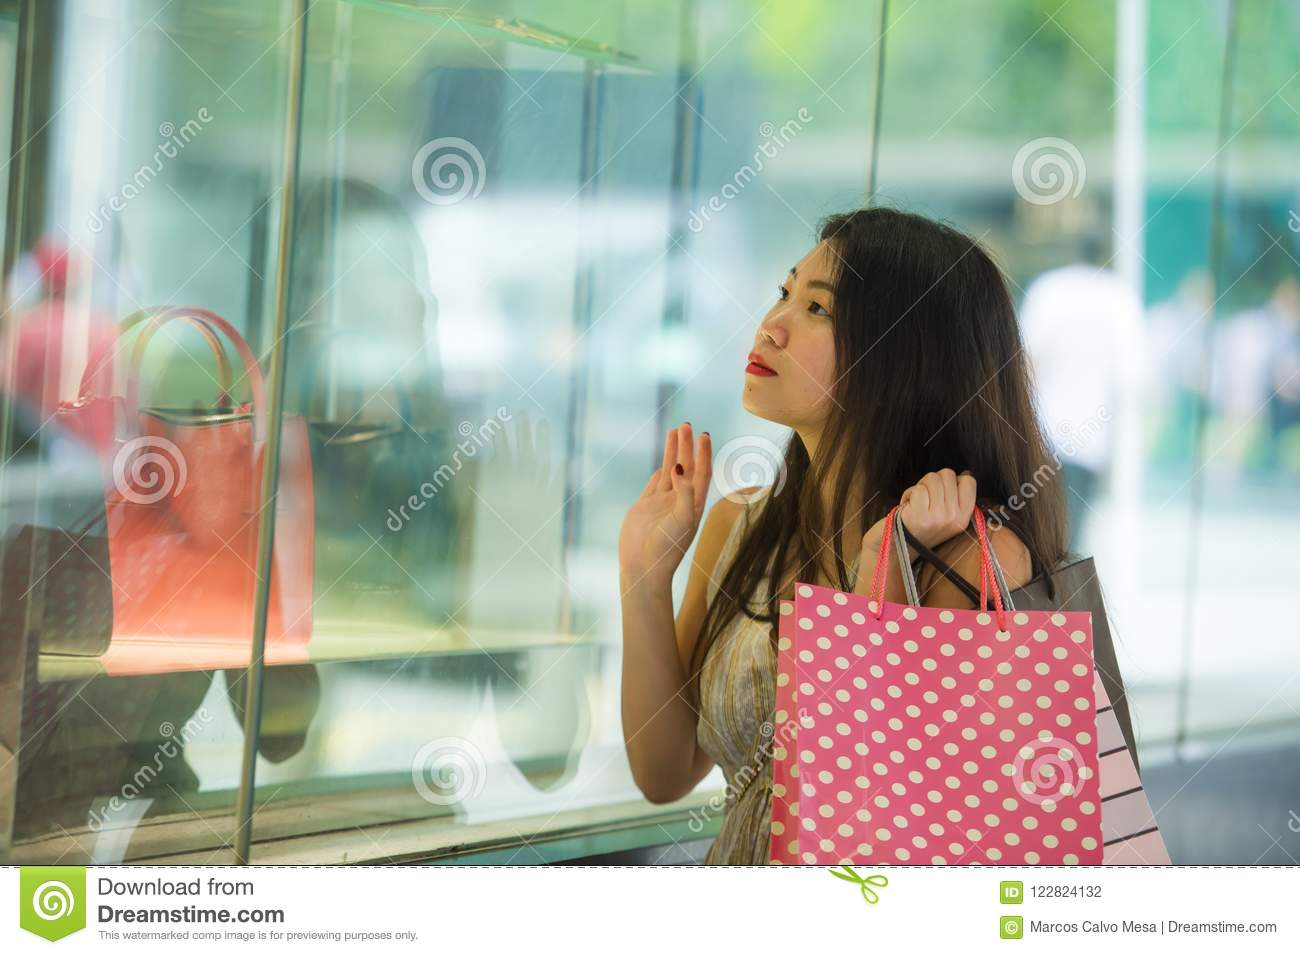 f2eebbbb4c8 Young beautiful and elegant Asian Korean woman holding shopping bags after buying  walking on street looking at clothing window store with sweet face ...